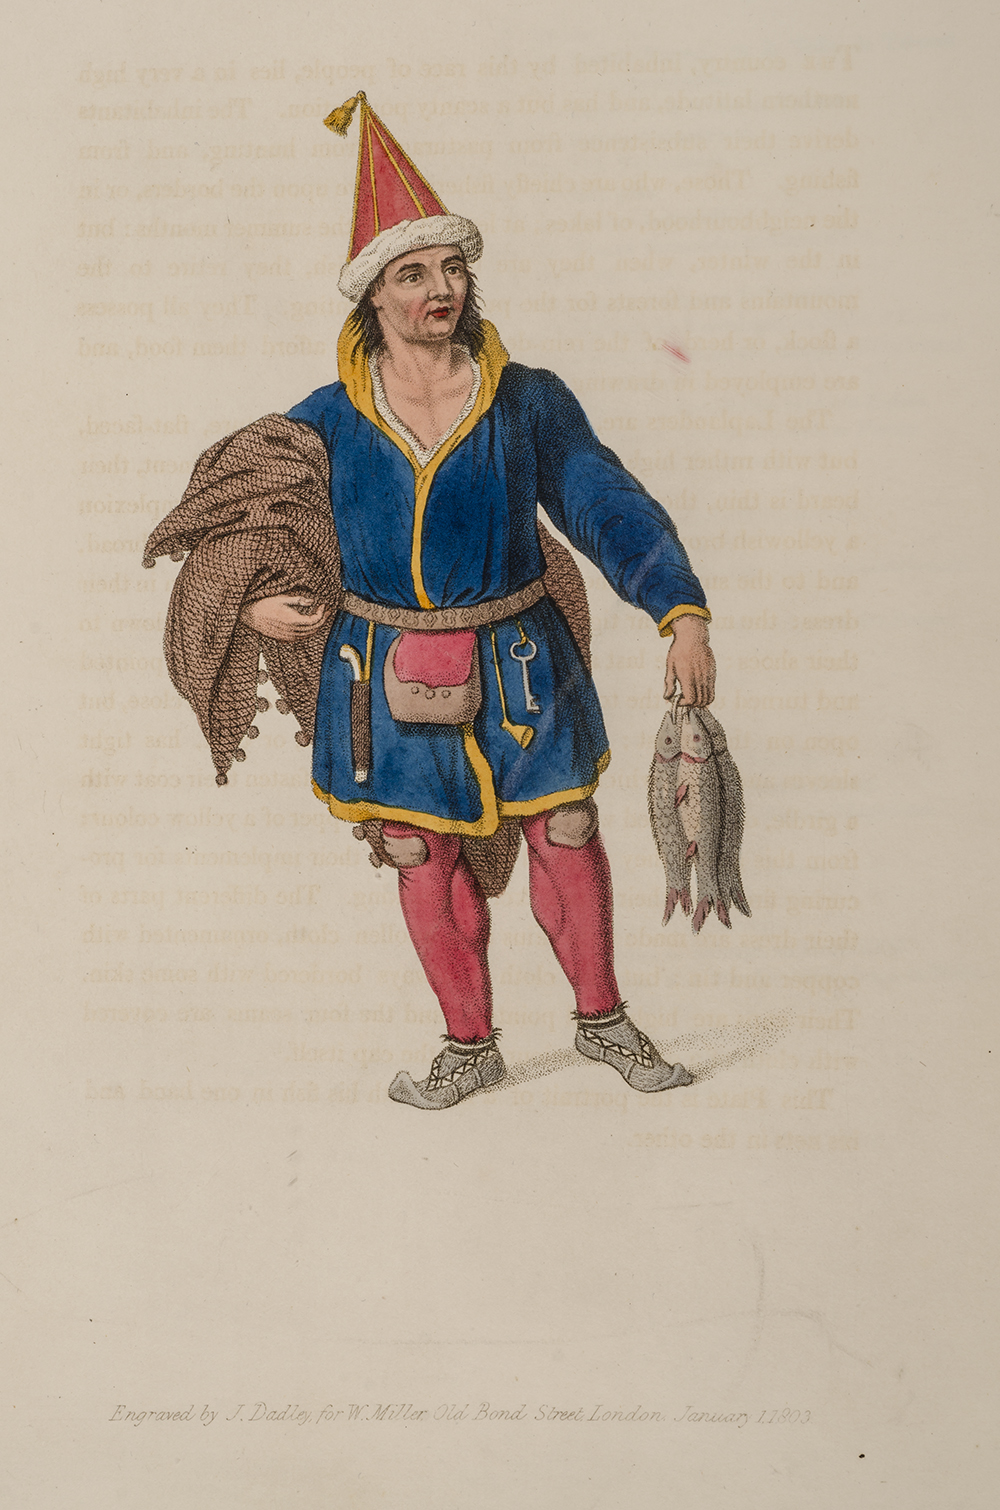 ALEXANDER, WILLIAM - Costume of the Russian Empire, the